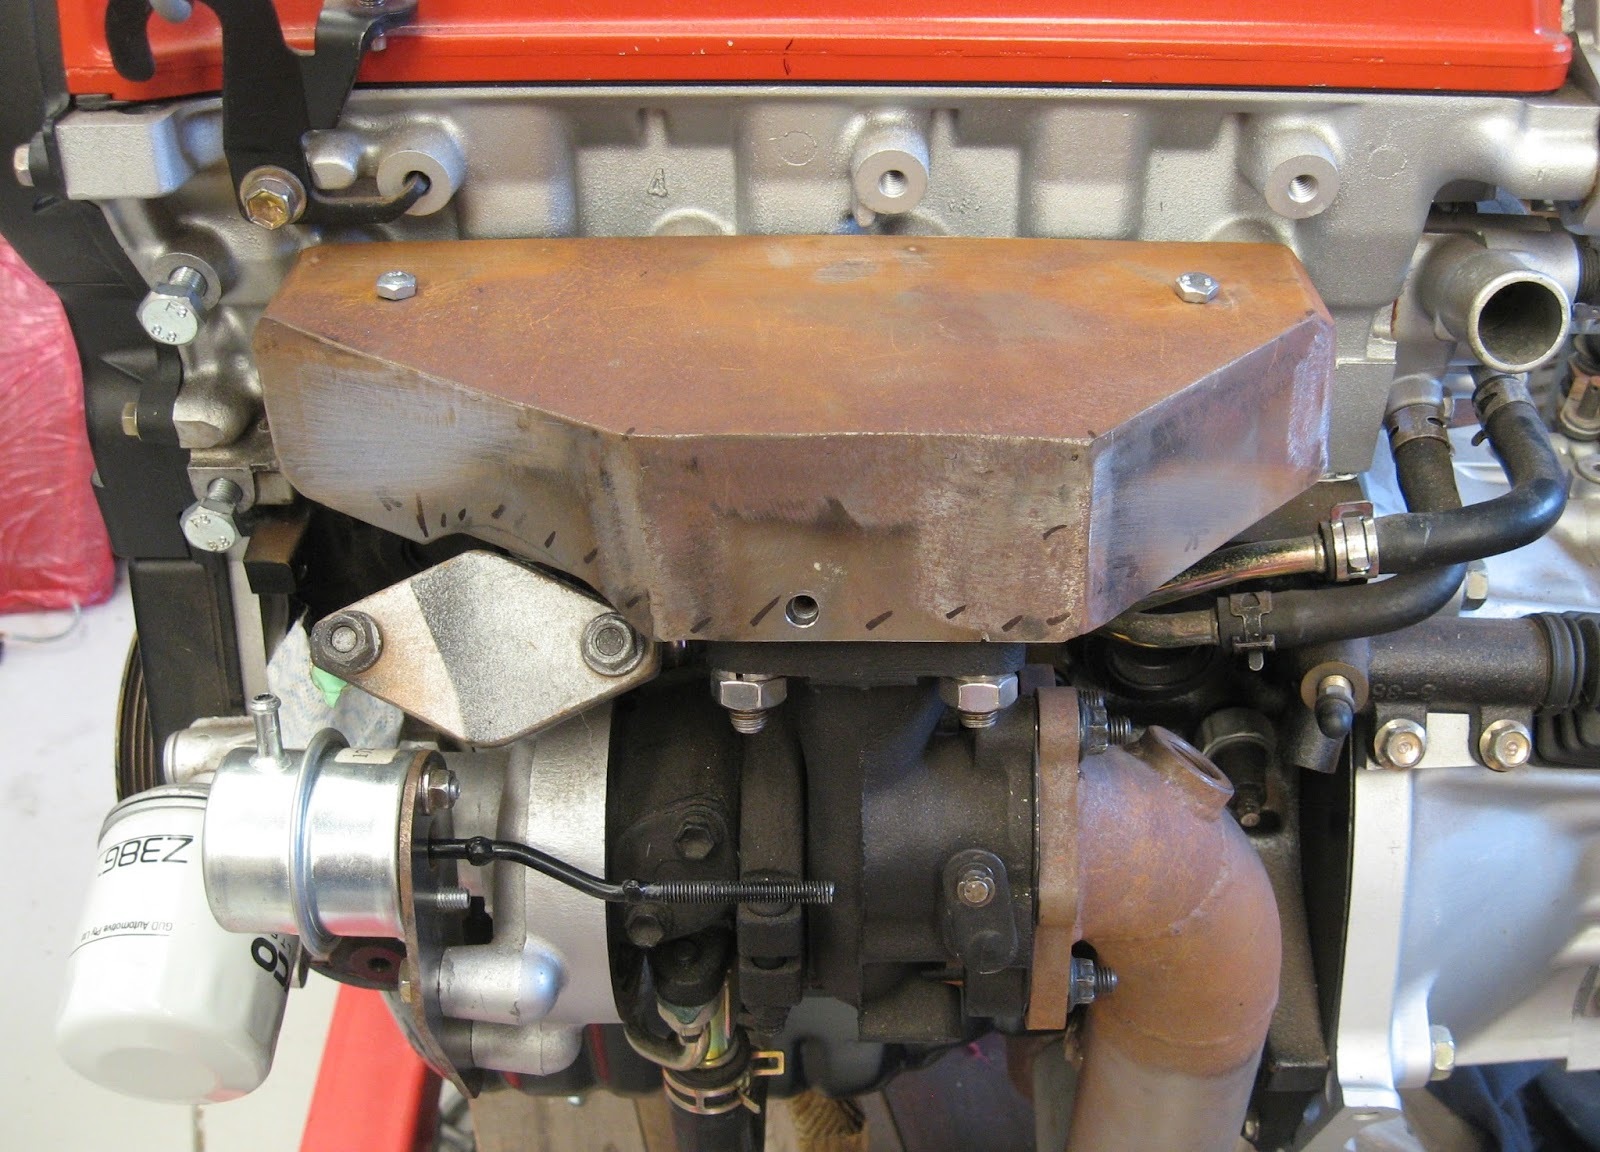 Heat Shields For Exhaust Manifold And Turbo